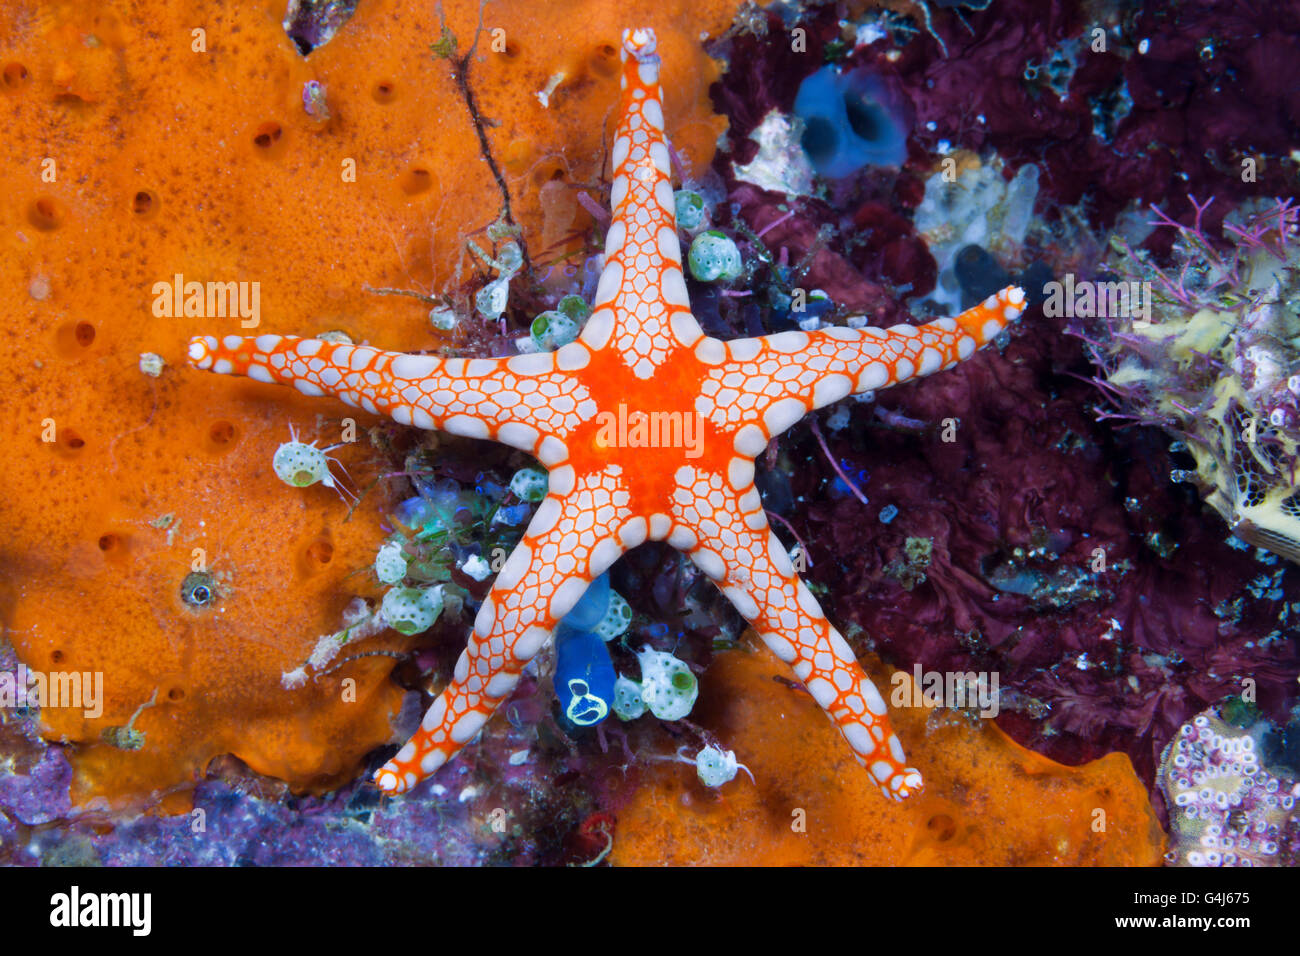 Red Mesh Starfish, Fromia monilis, Ambon, Moluccas, Indonesia Stock Photo